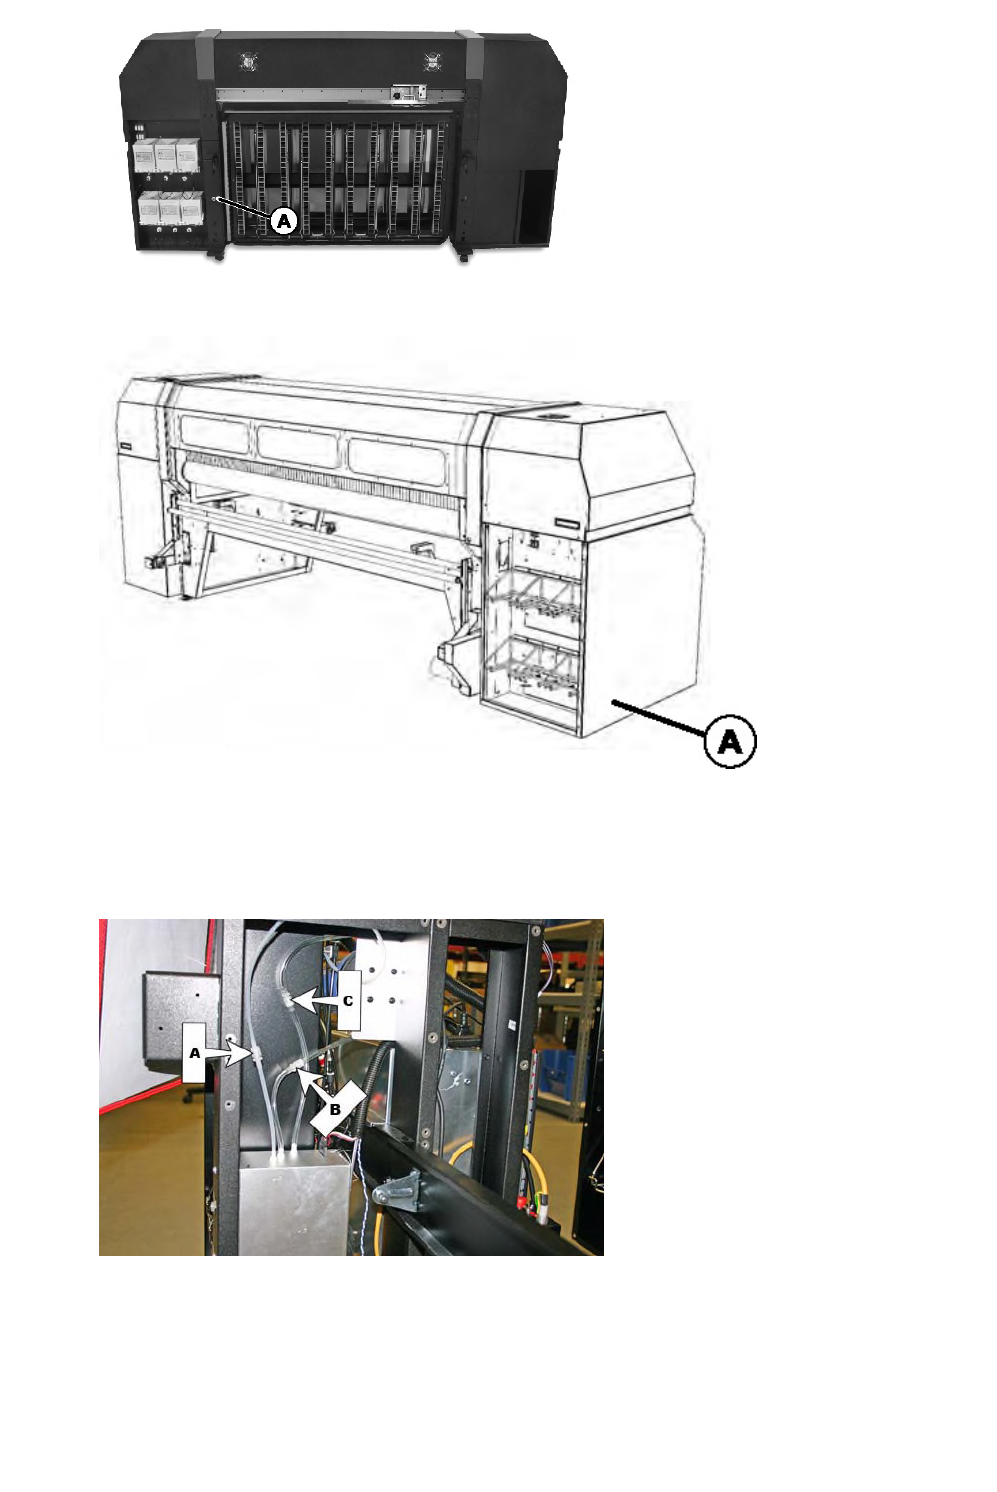 Ch104 67002 Hp New Vacuum Pressure Assembly Pump For The Further Capping Casing And Wiring Also Denso Tape On Fax Cable 6